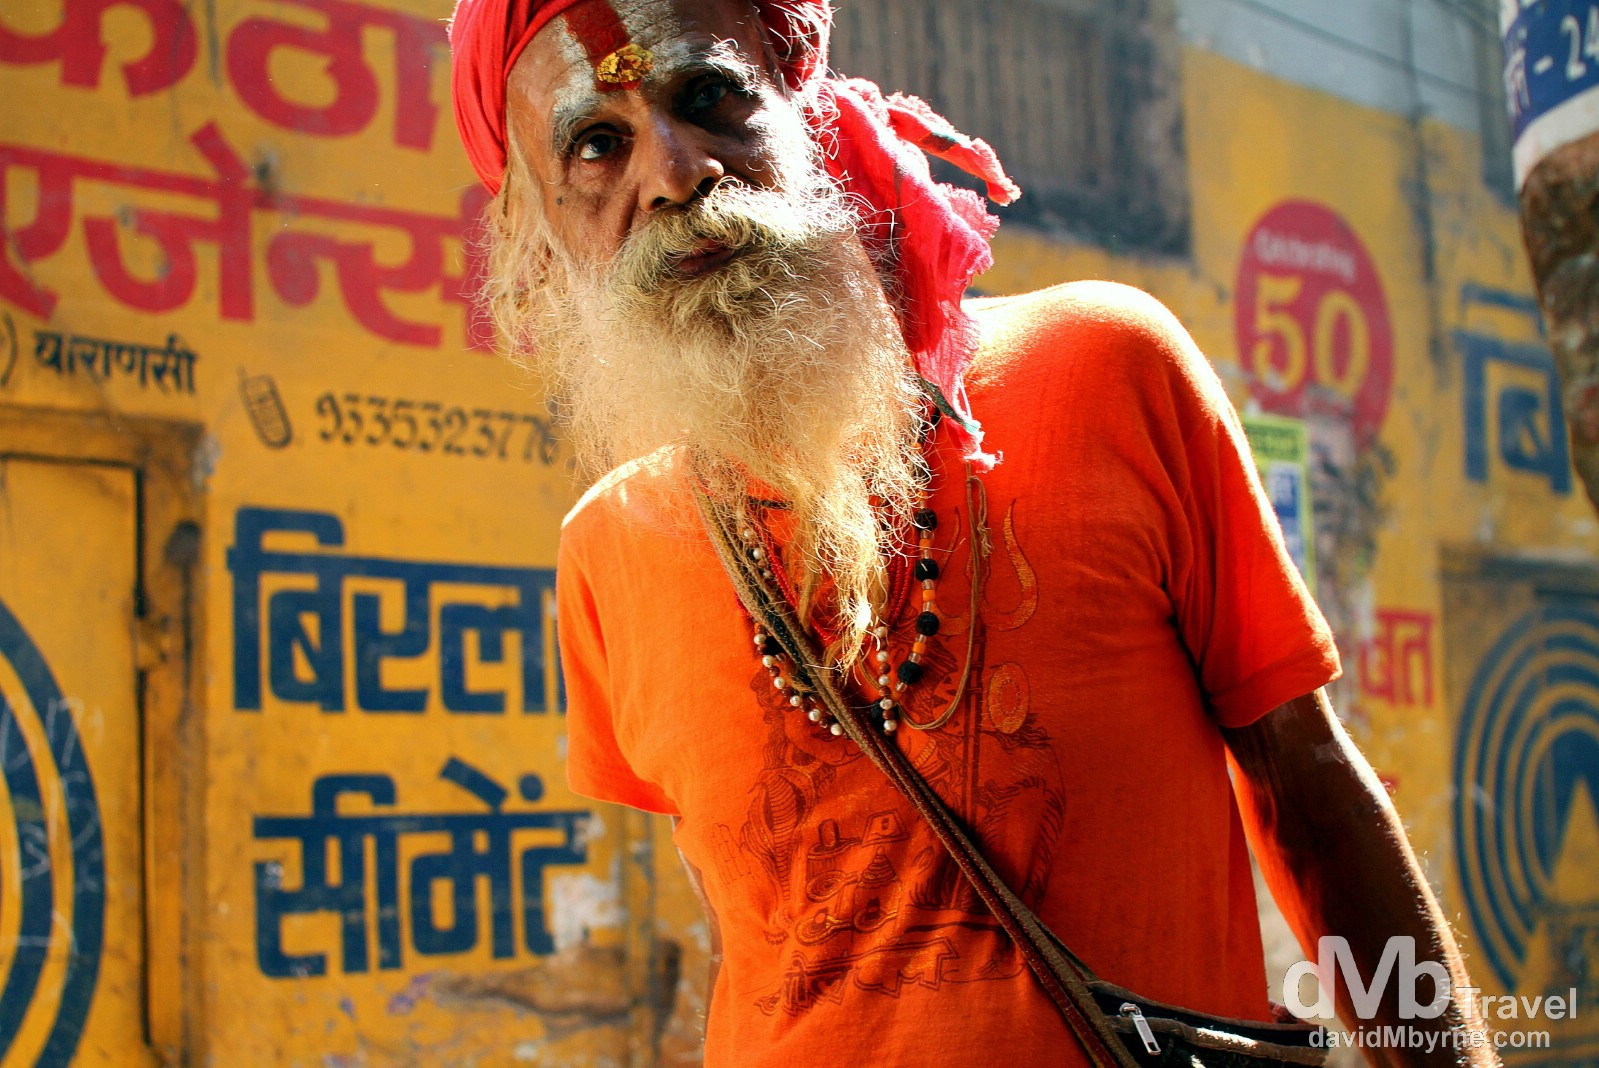 A sadhu, an ascetic Hindi holy man, in the narrow lanes of old town Varanasi, Uttar Pradesh, India. October 13th 2012.